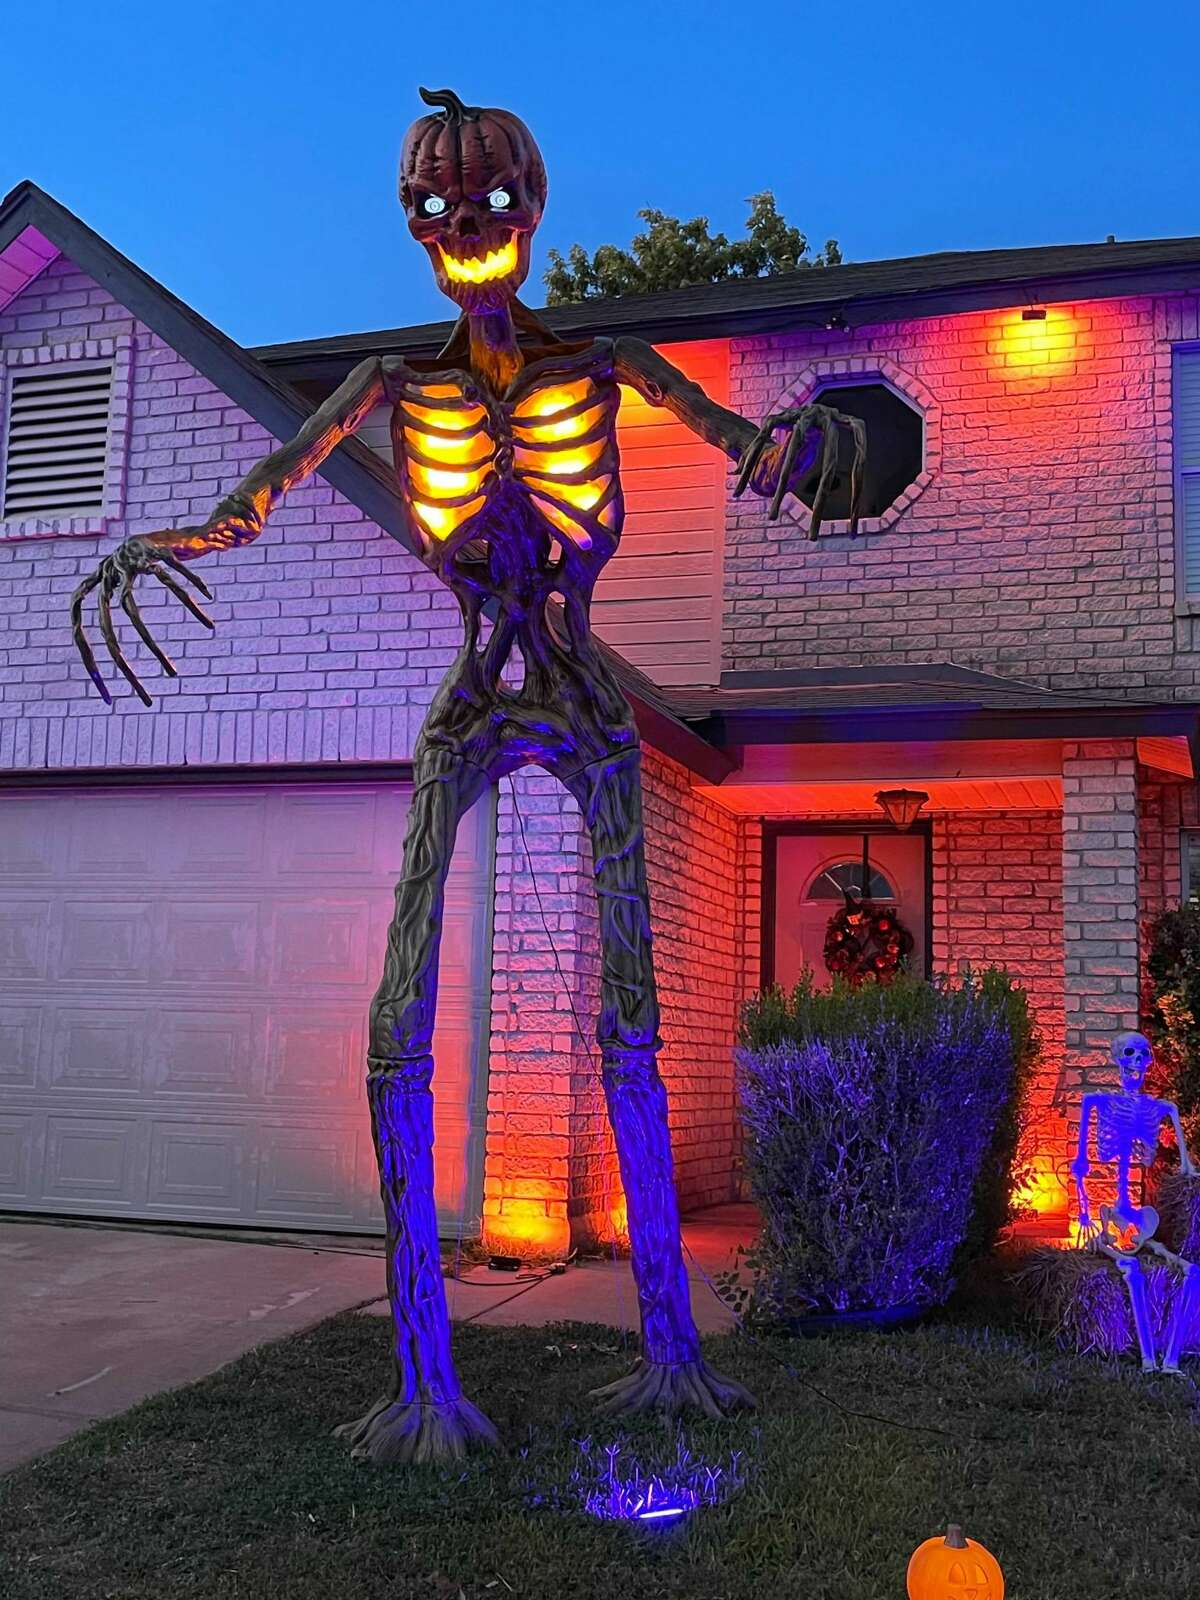 This year, Home Depot added a companion - a 12-foot skeleton with a pumpkin head and a torso that lights up named the Inferno Pumpkin.